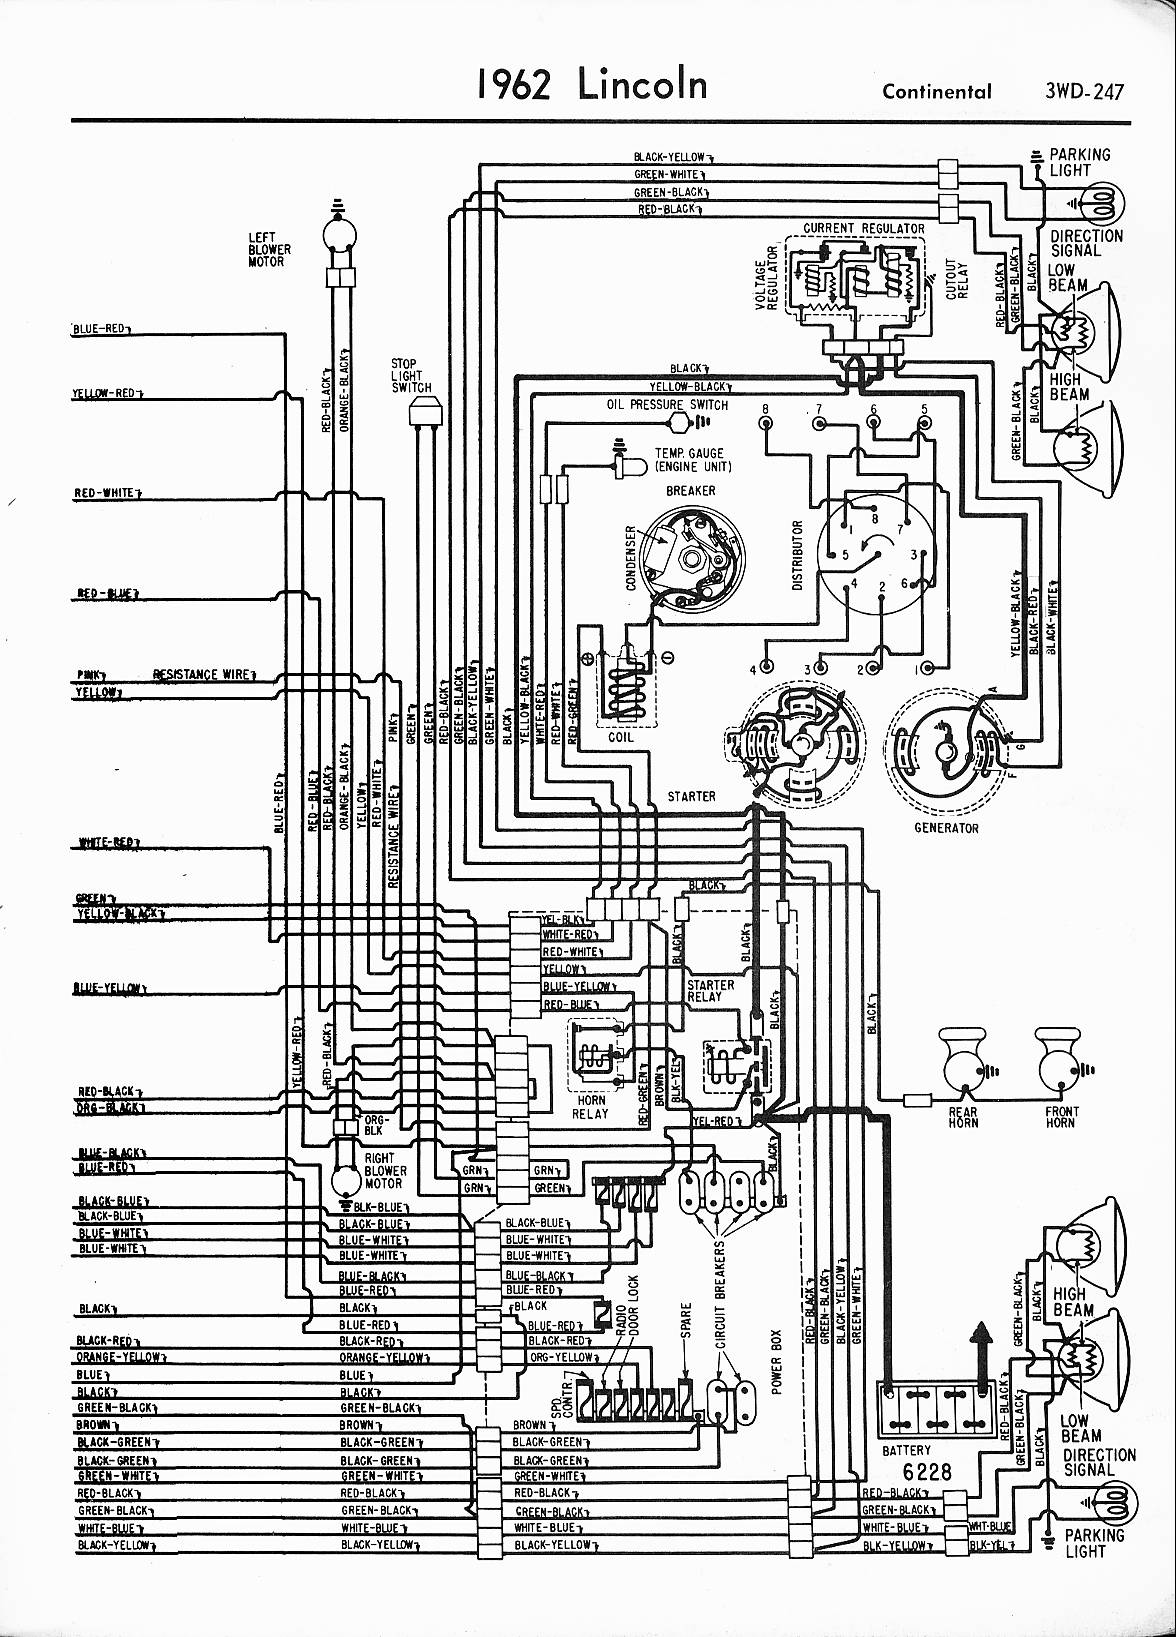 hight resolution of 1964 lincoln vacuum wiring diagram wiring diagrams schema rh 45 verena hoegerl de 1999 lincoln continental